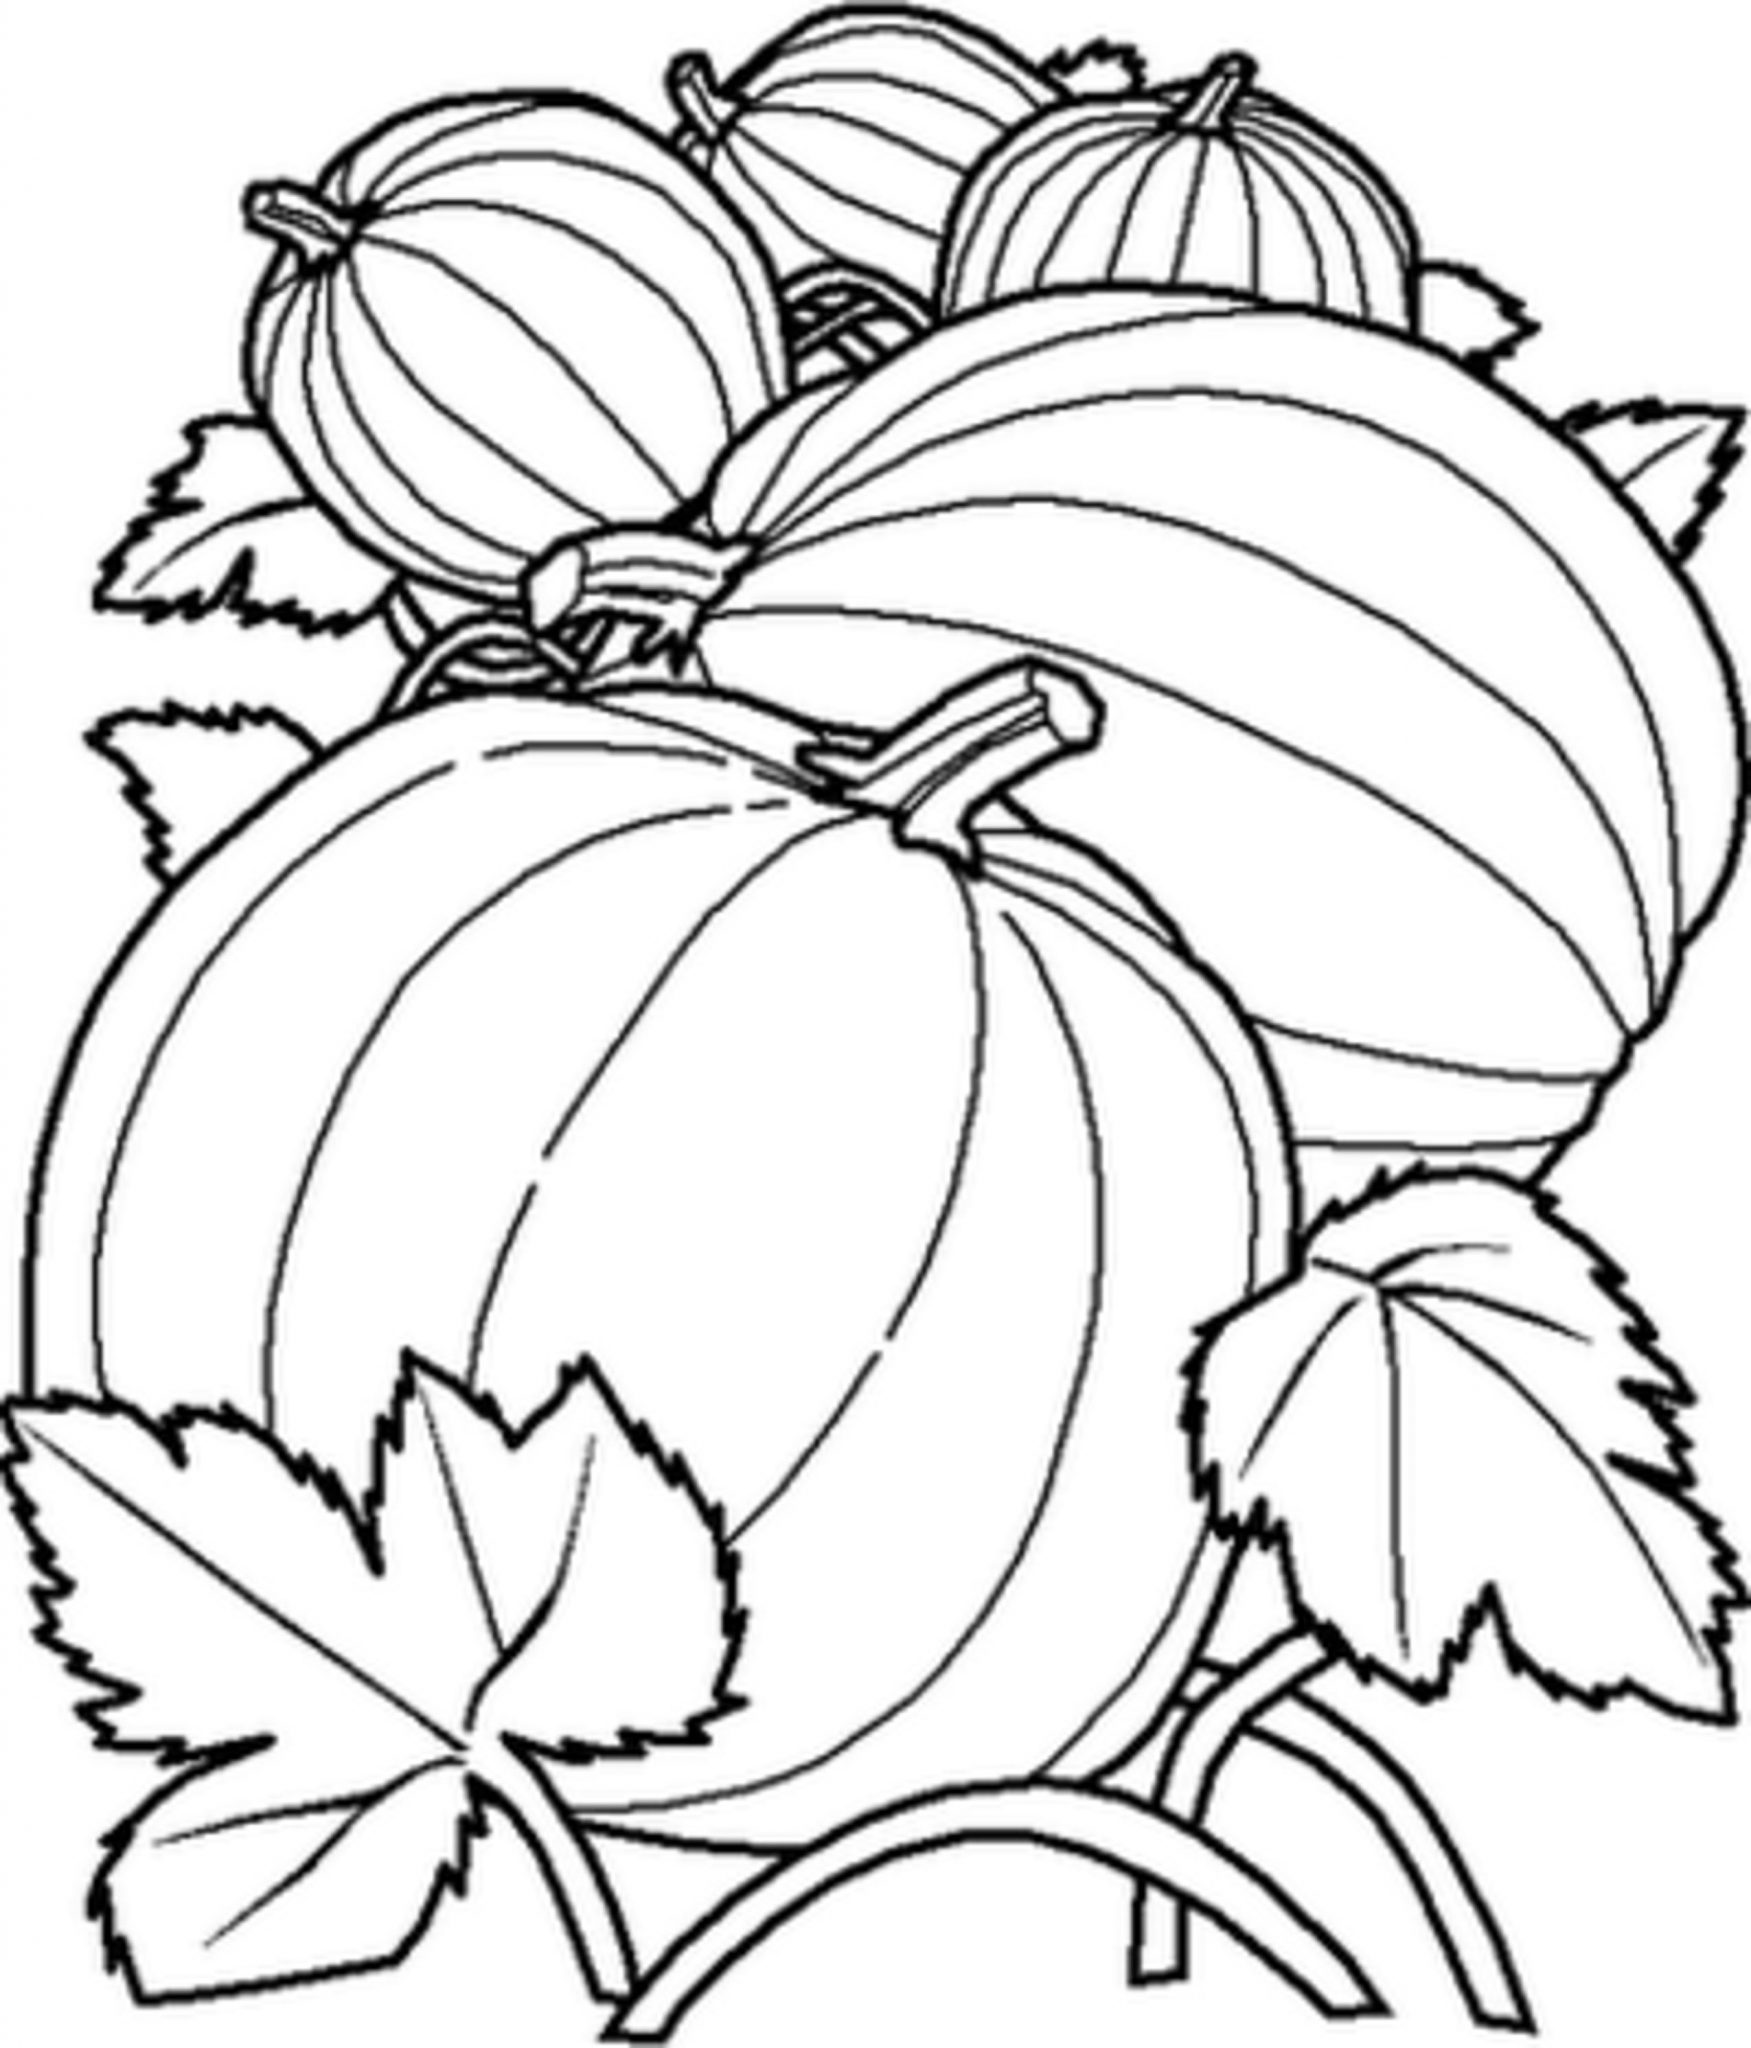 coloring pages of pumpkins pumpkin outline free download on clipartmag pumpkins coloring pages of